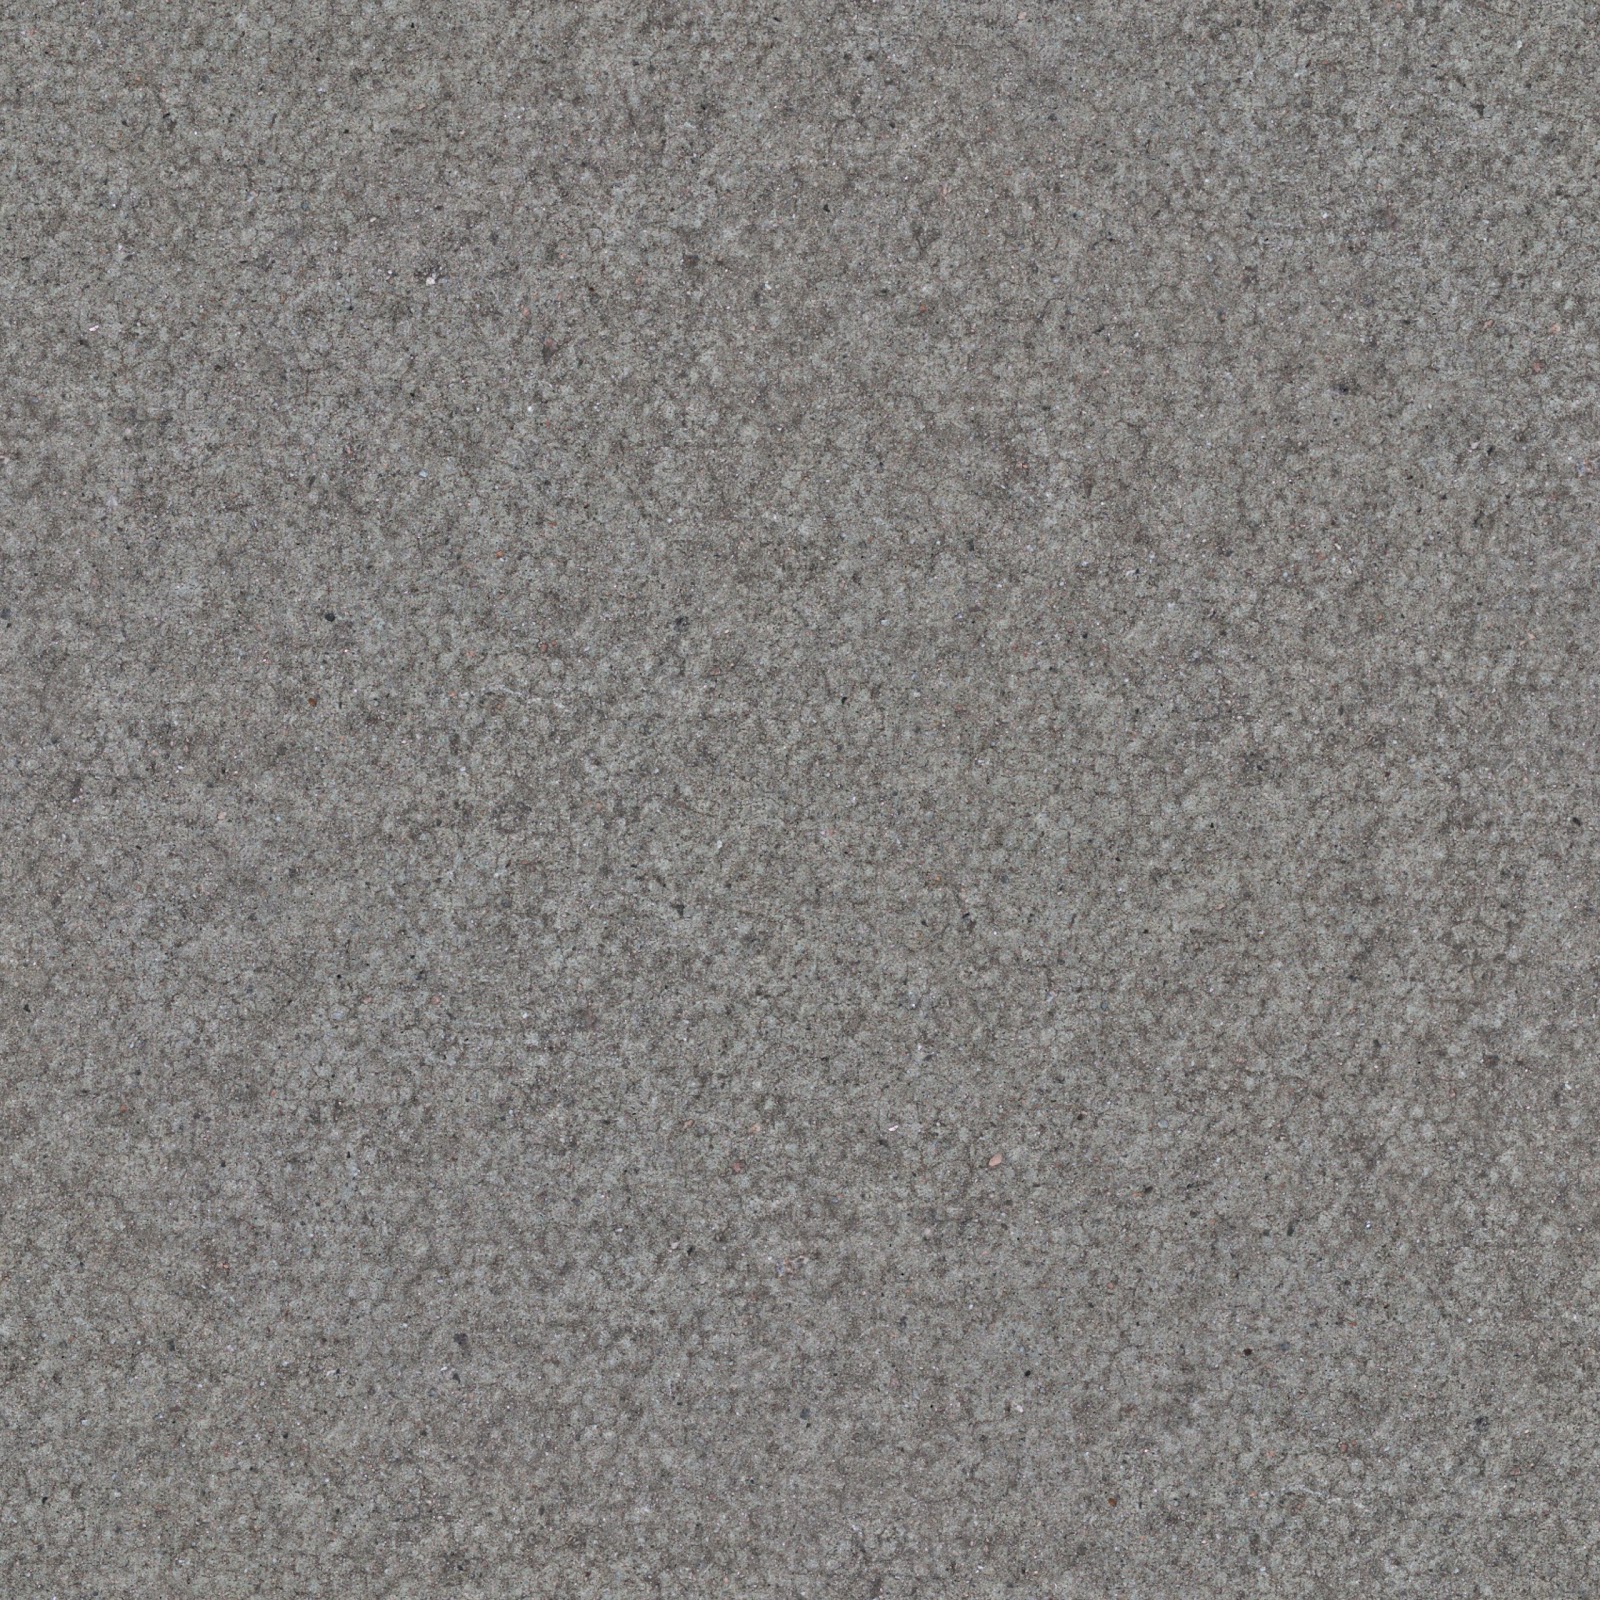 High resolution seamless textures seamless concrete floor tile texture - Textuur tiling ...